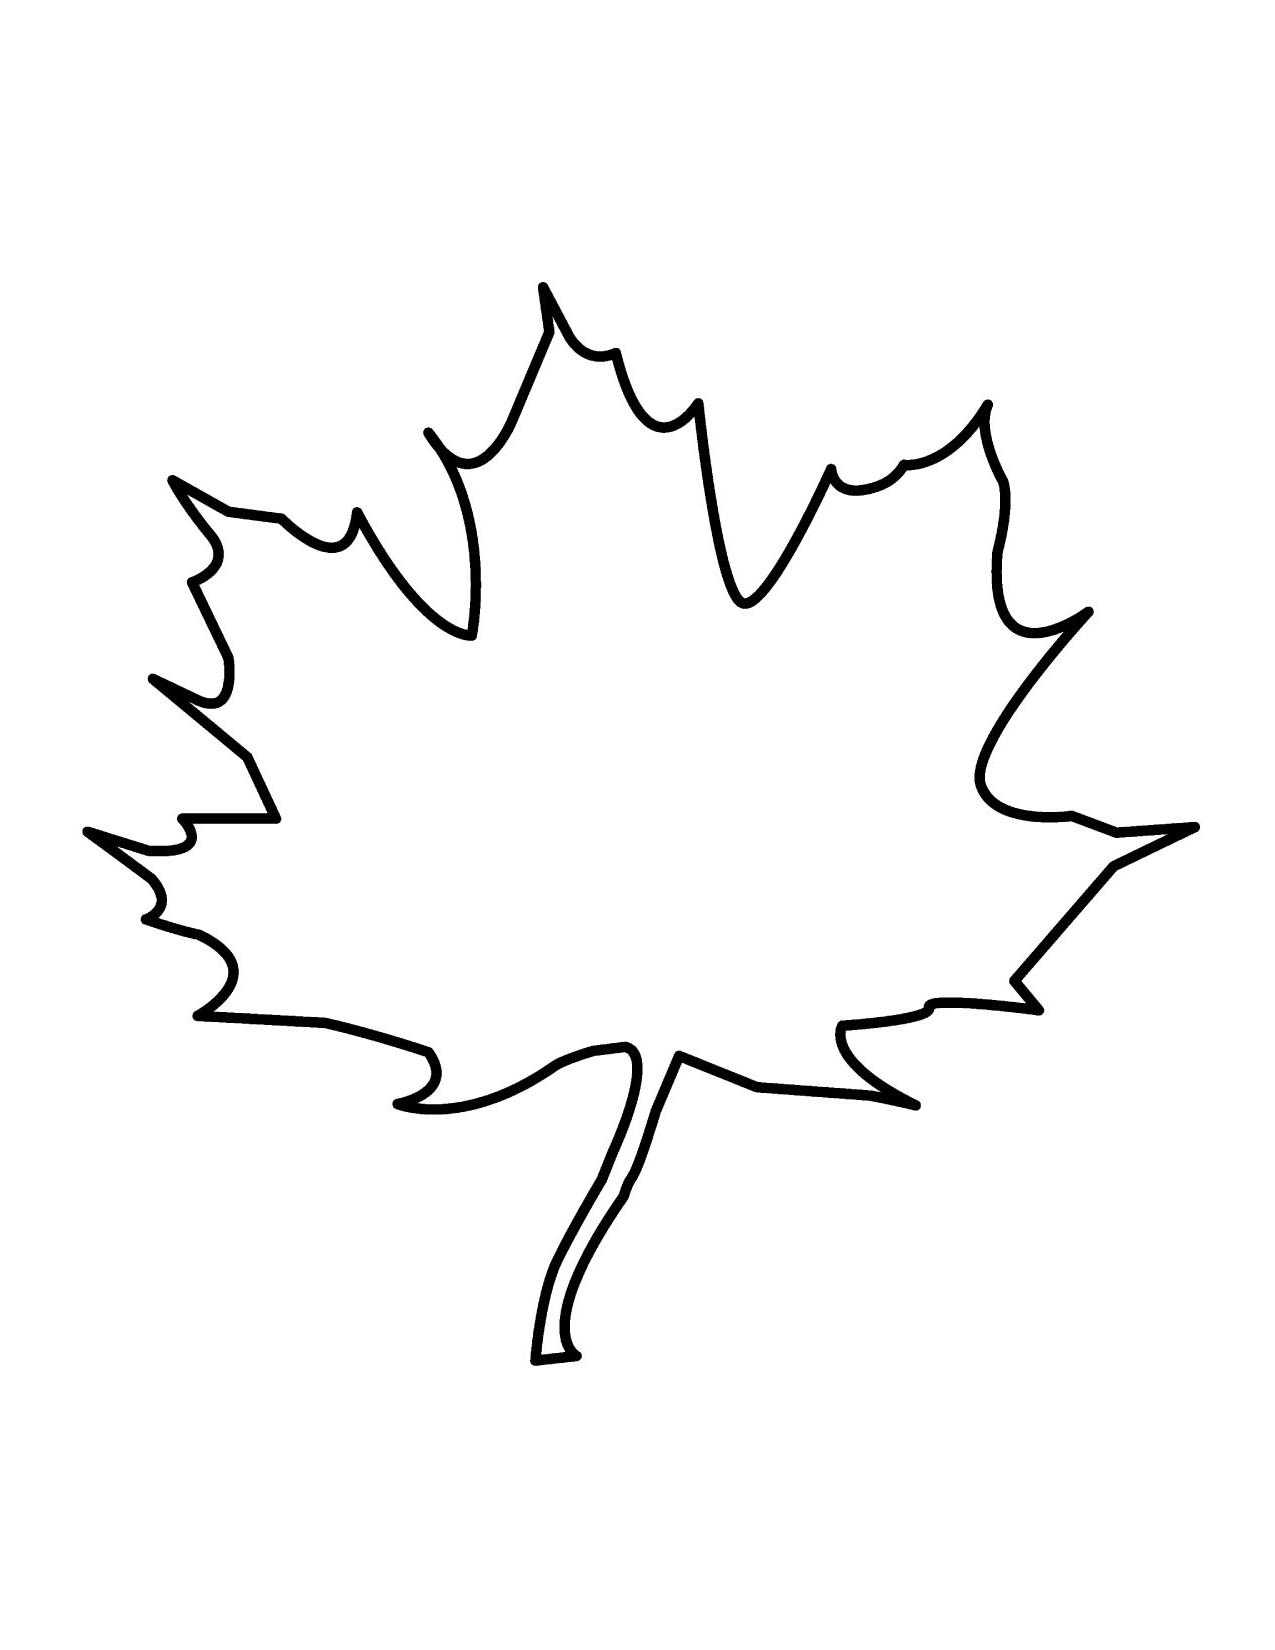 Best Free Leaf Outline Clip Art Image » Free Vector Art.